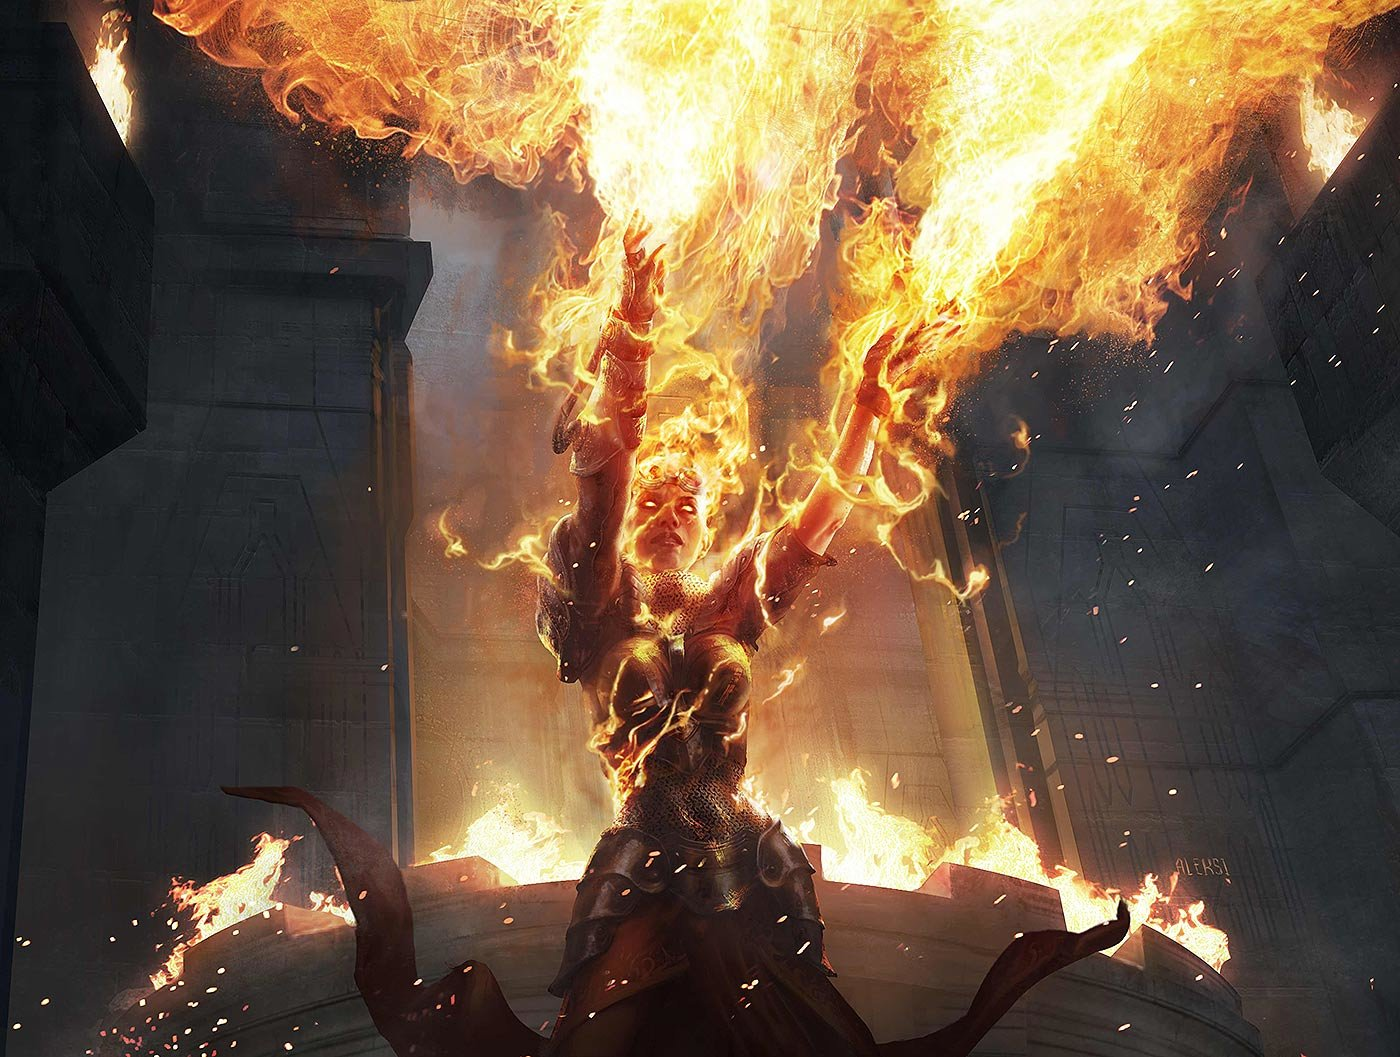 Aleksi Briclot Chandra Ravaging Blaze Illustration for Magic The Gathering